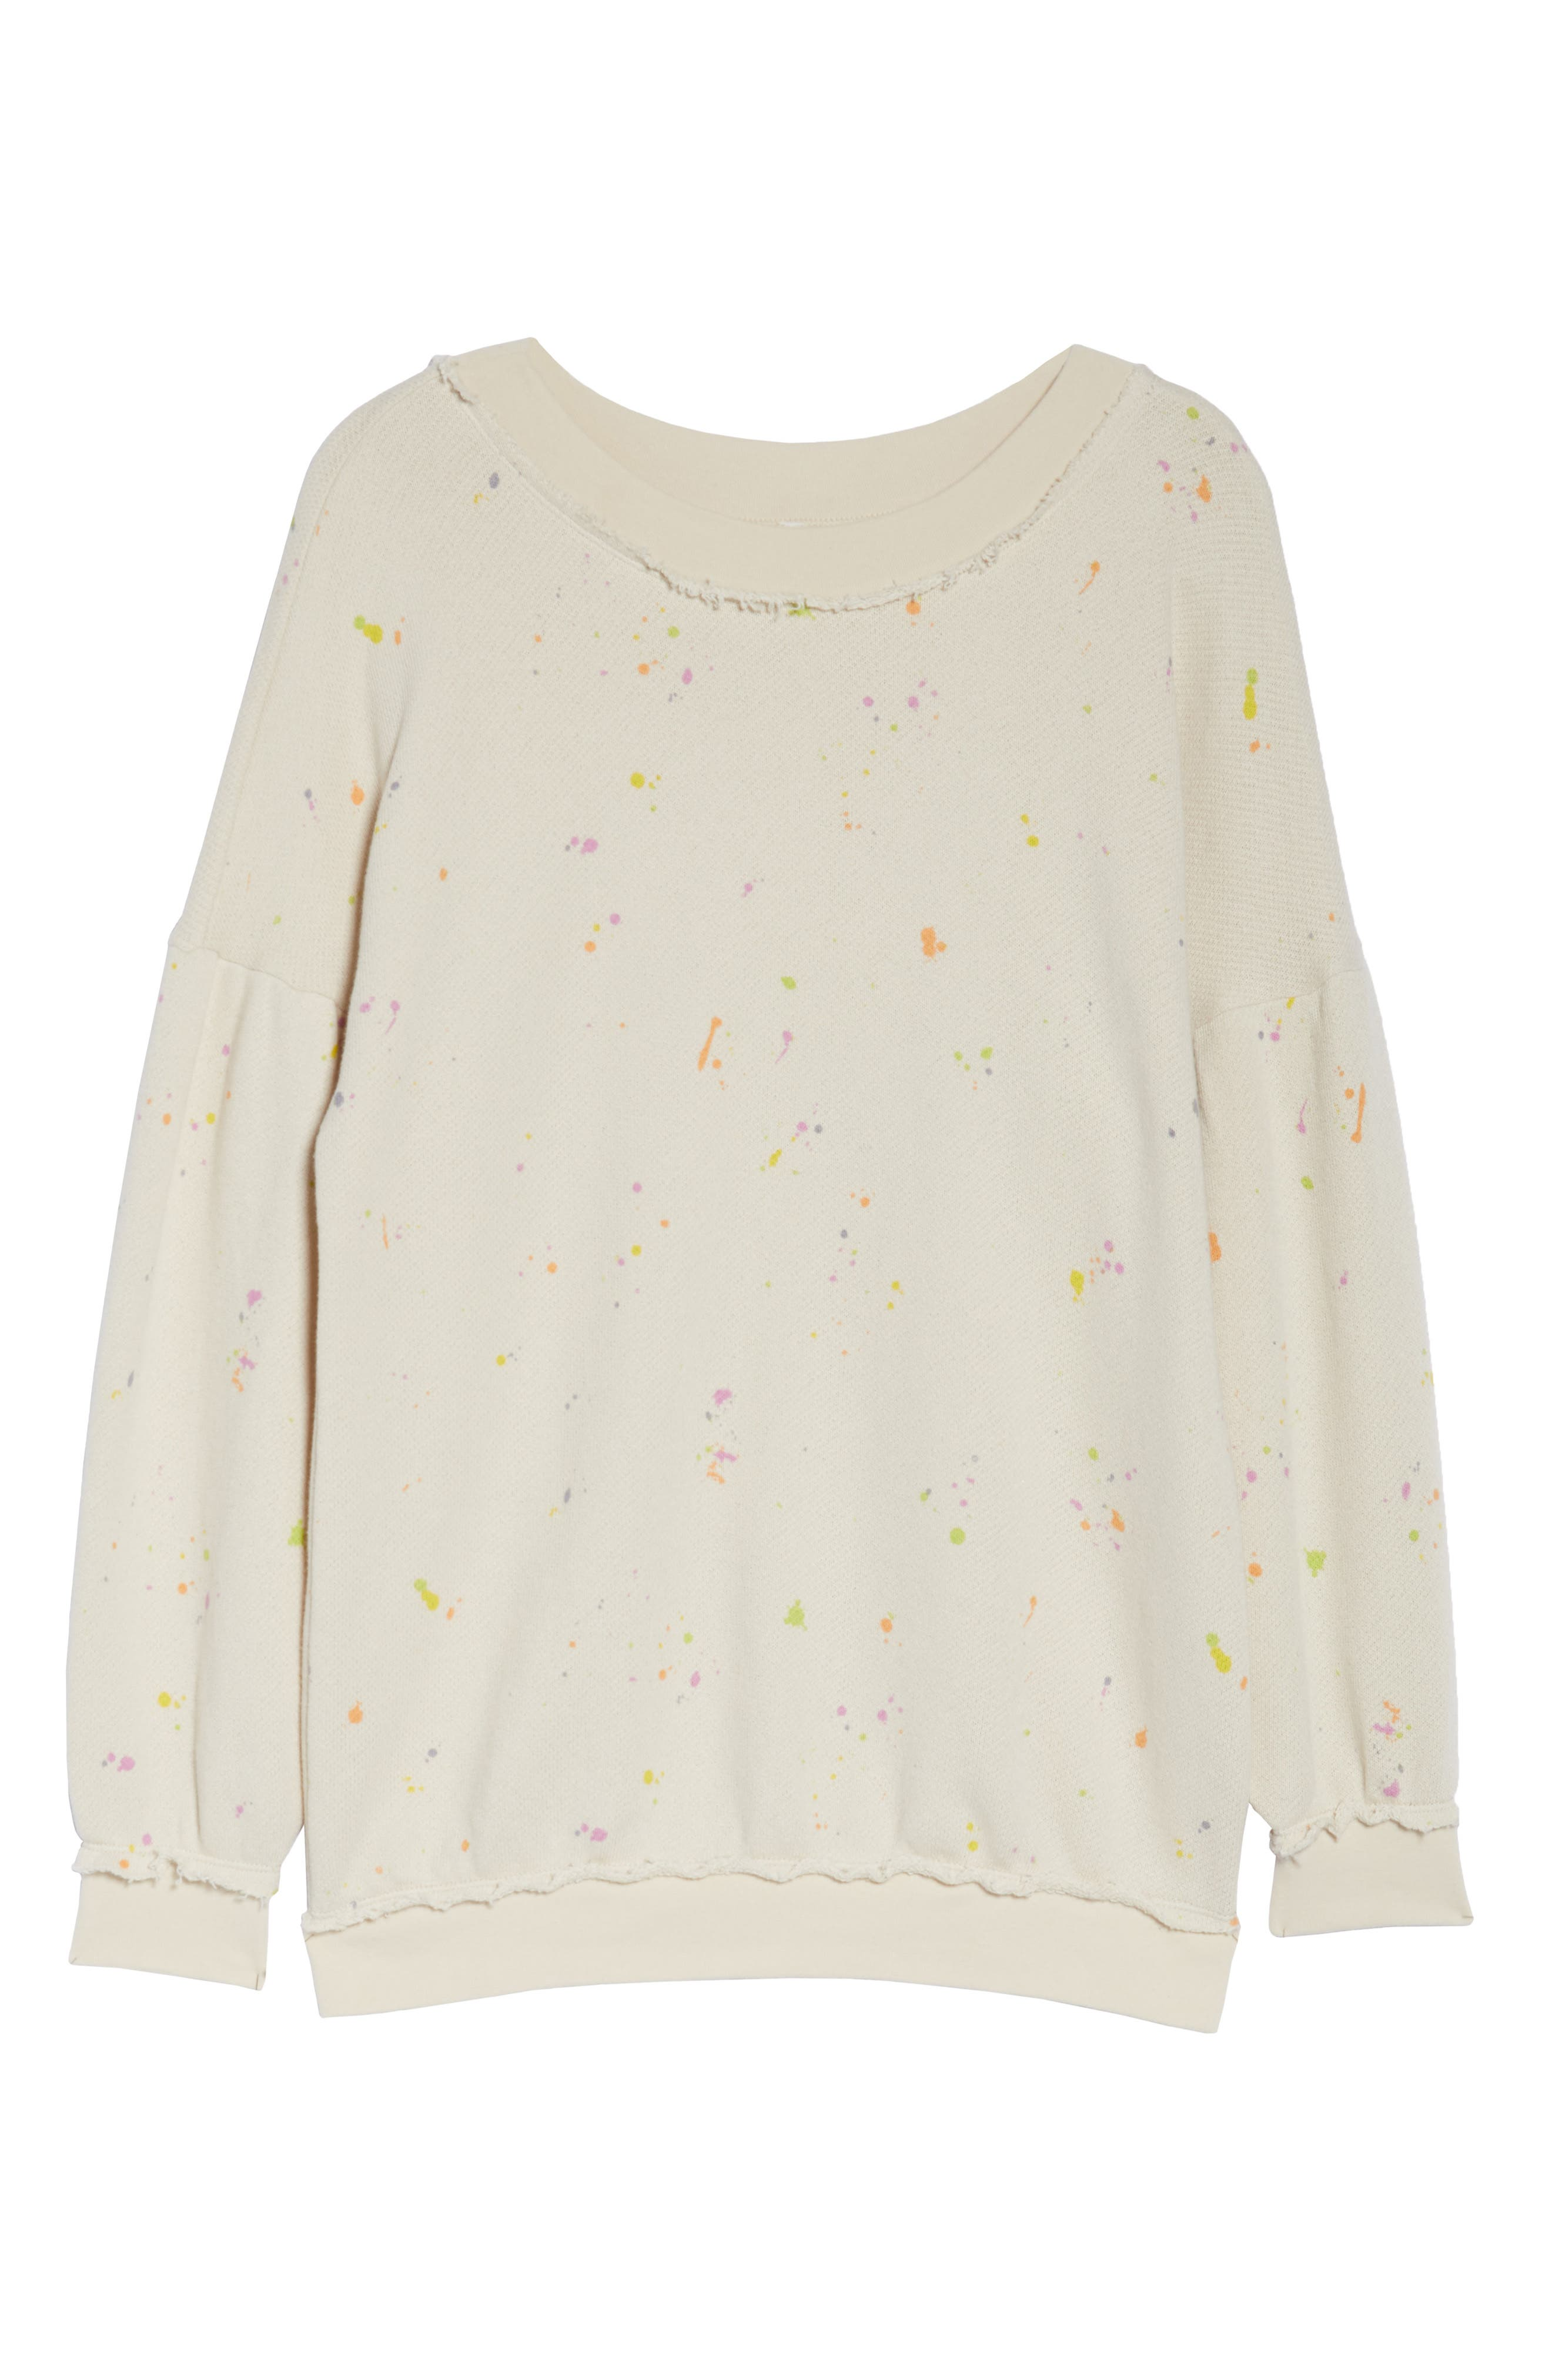 FREE PEOPLE MOVEMENT, Make It Count Printed Sweatshirt, Alternate thumbnail 7, color, IVORY